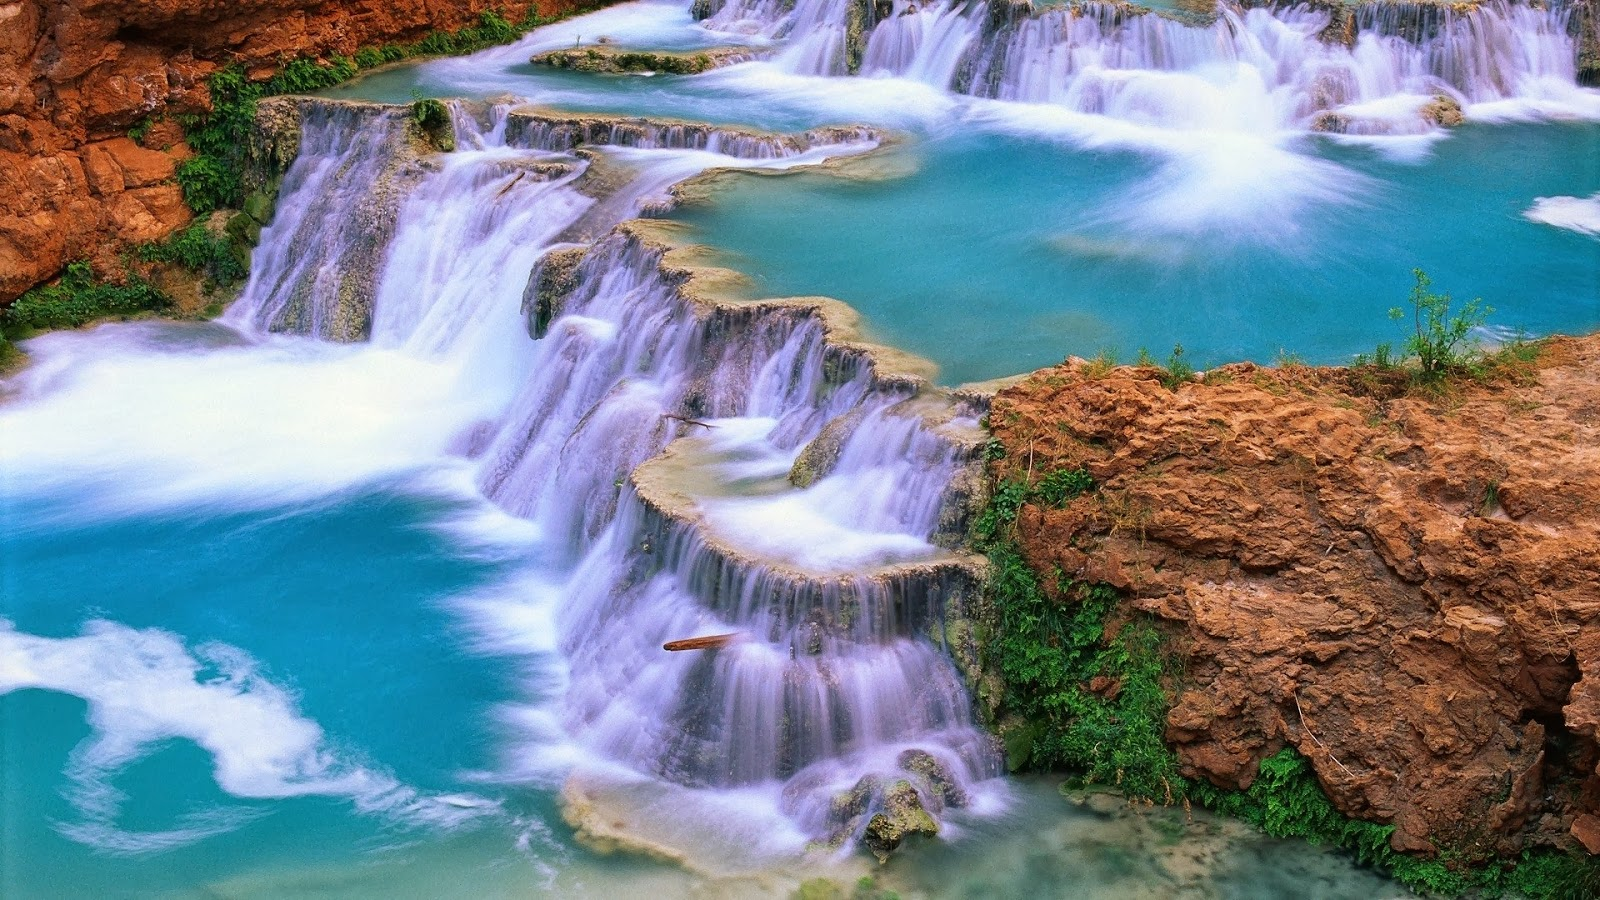 Beautiful Scenery Wallpapers - WallpaperSafari 10 Most Beautiful Places In The World